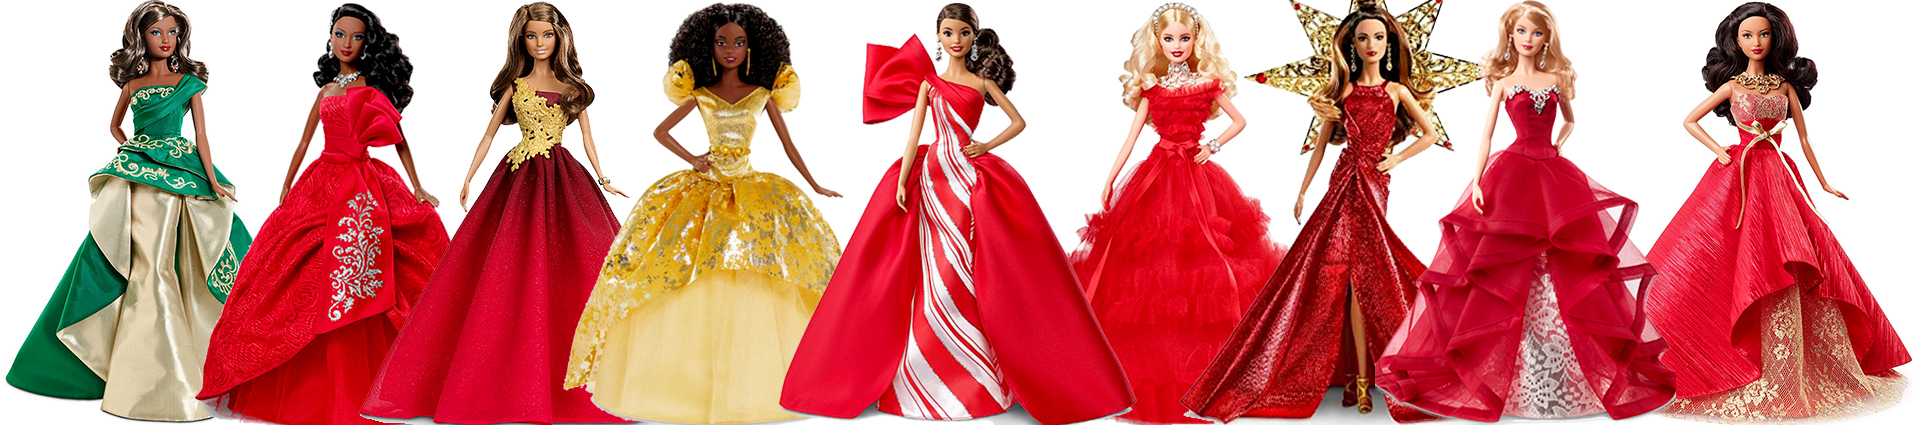 Barbie Collection Holiday